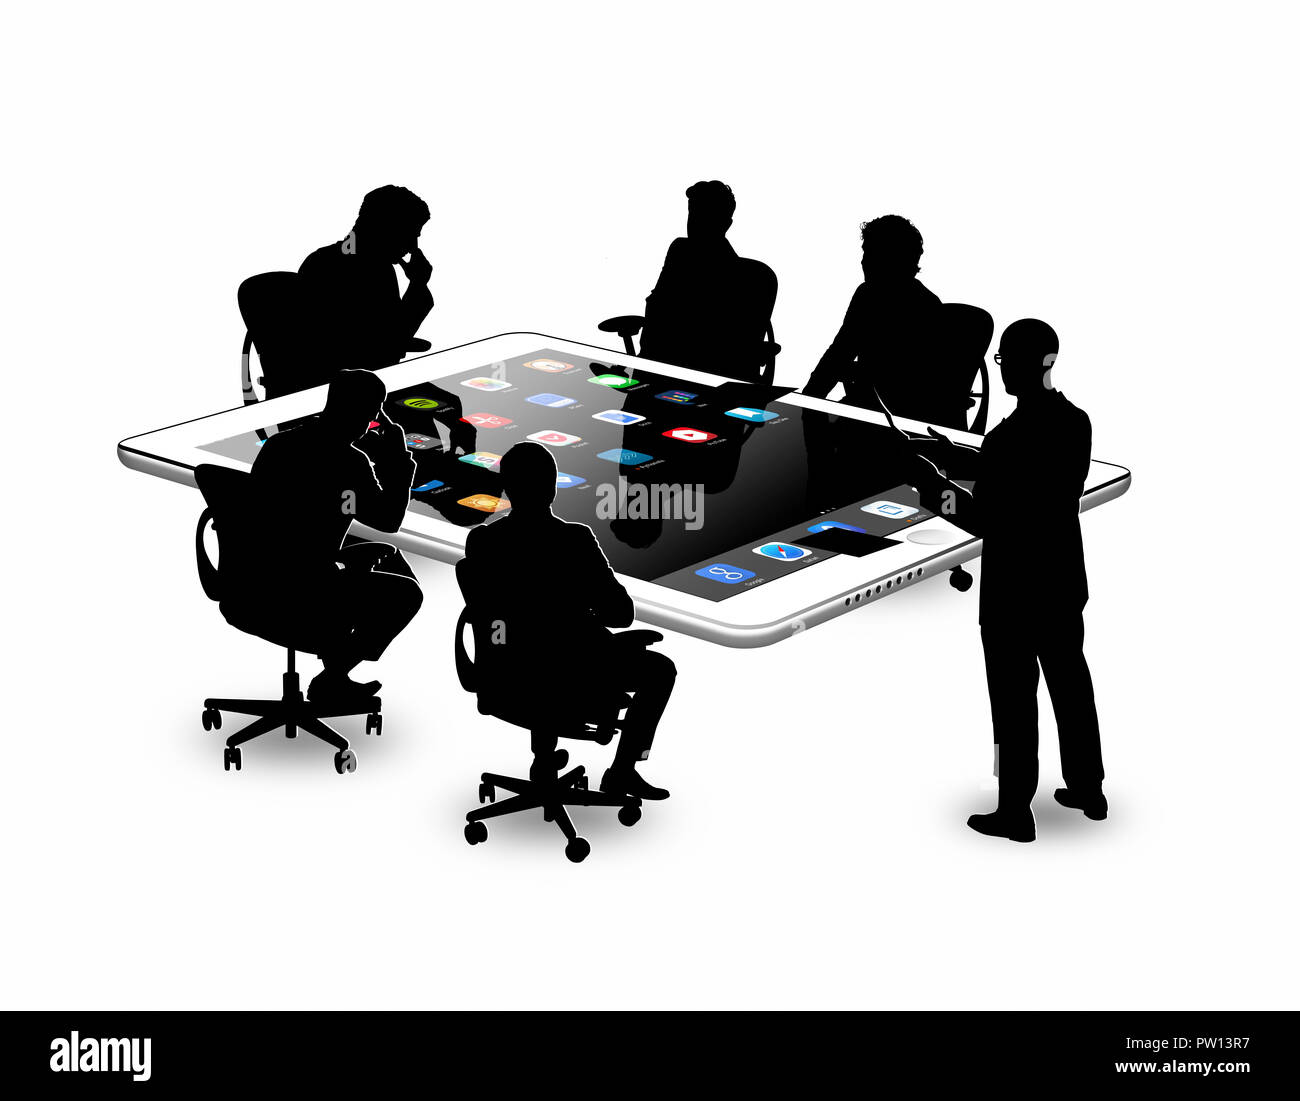 Concept A group of Business Men's in a Meeting, Around a Table Tablet, Conference Meeting, Doing Business - Stock Image